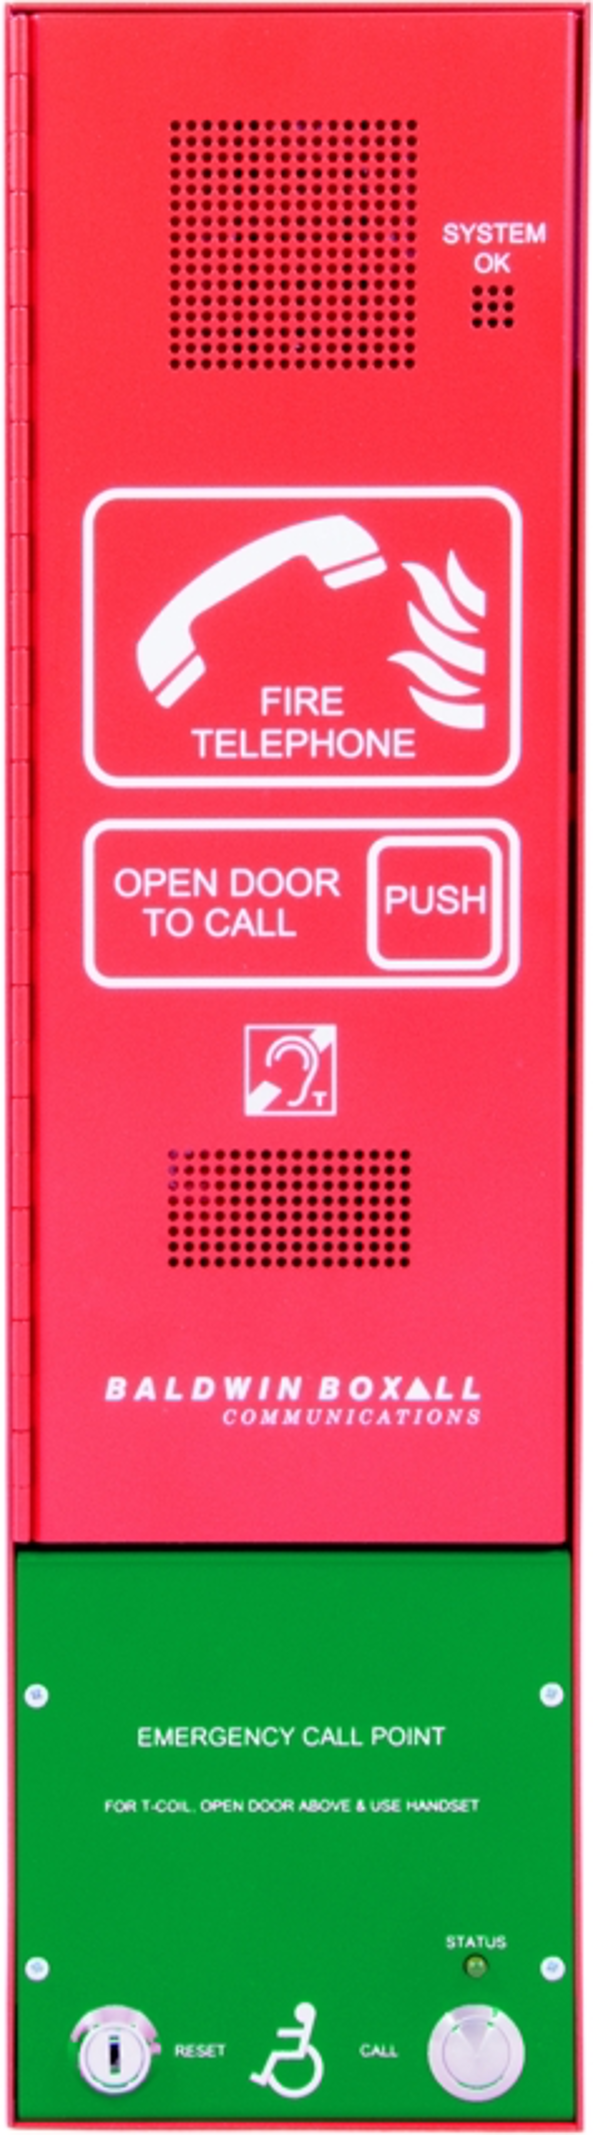 Baldwin Boxall OmniCare BVOCCGCP Combined Type-A & Type-B Outstation Disabled Refuge Green & Fire Telephone Push Door Red